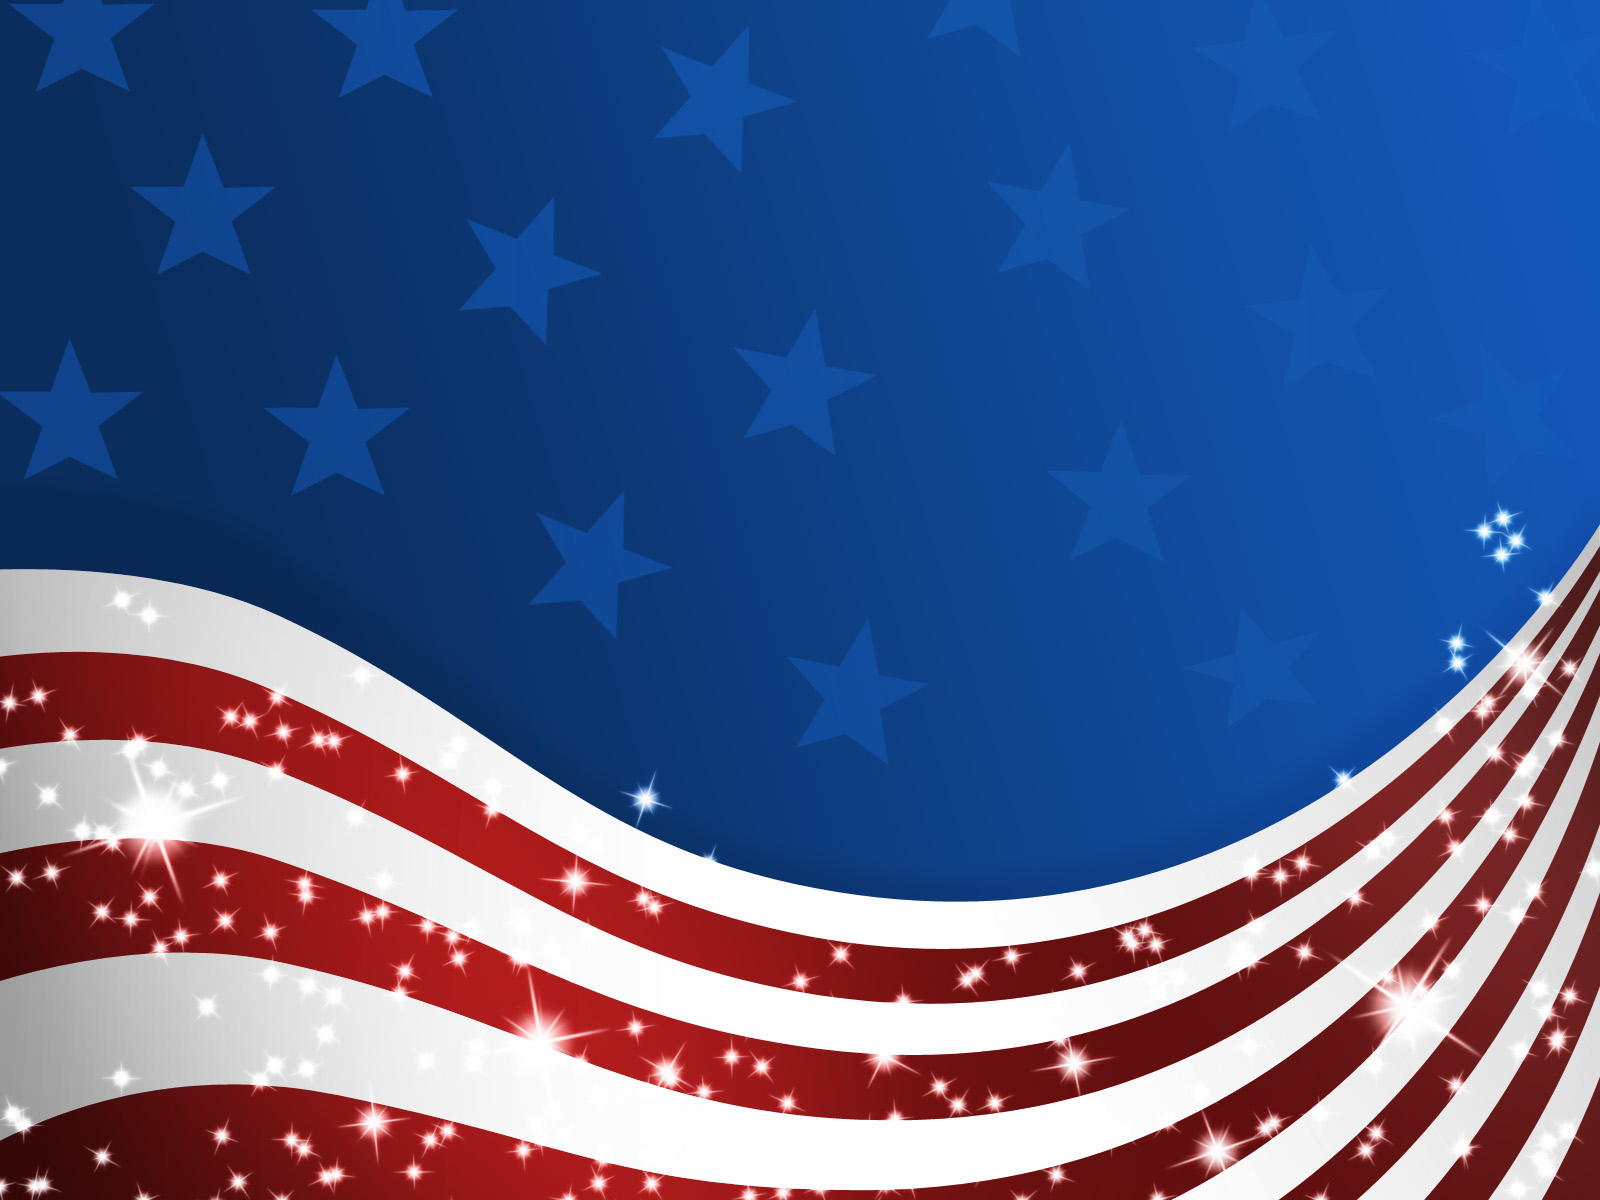 American Flag Powerpoint Background flag ppt backgrounds